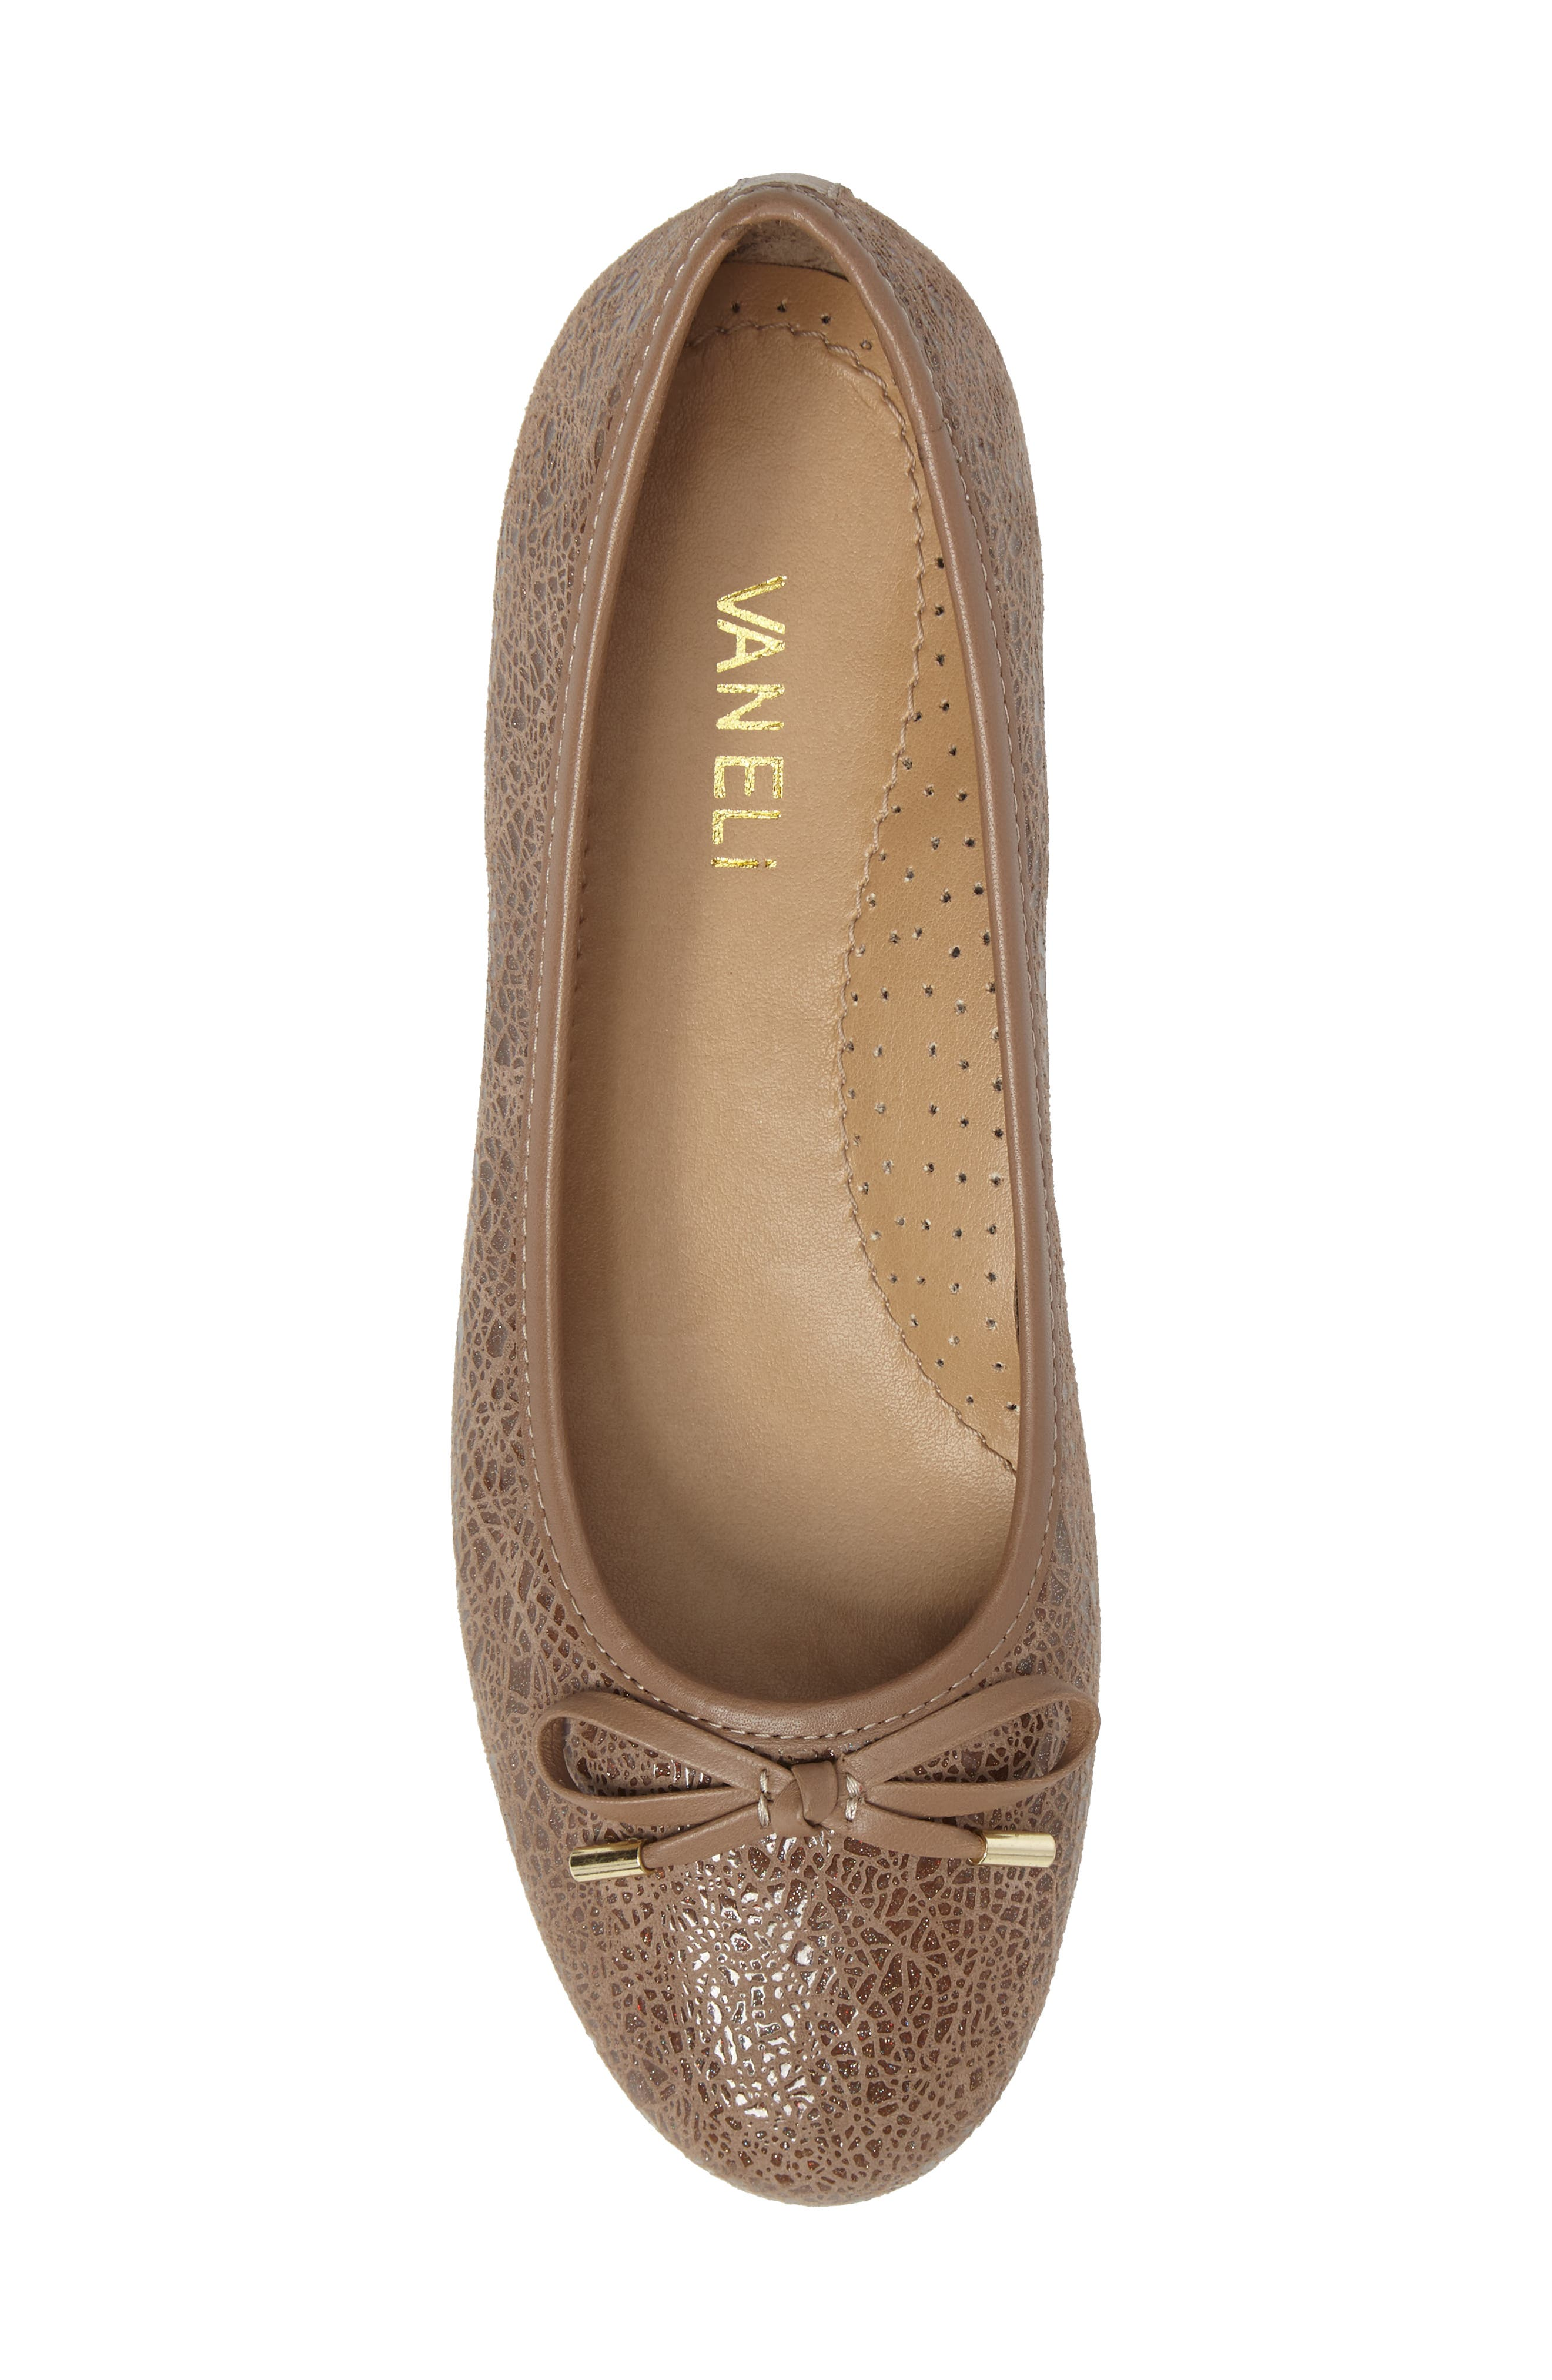 'Signy' Ballet Flat,                             Alternate thumbnail 5, color,                             Taupe Print Leather